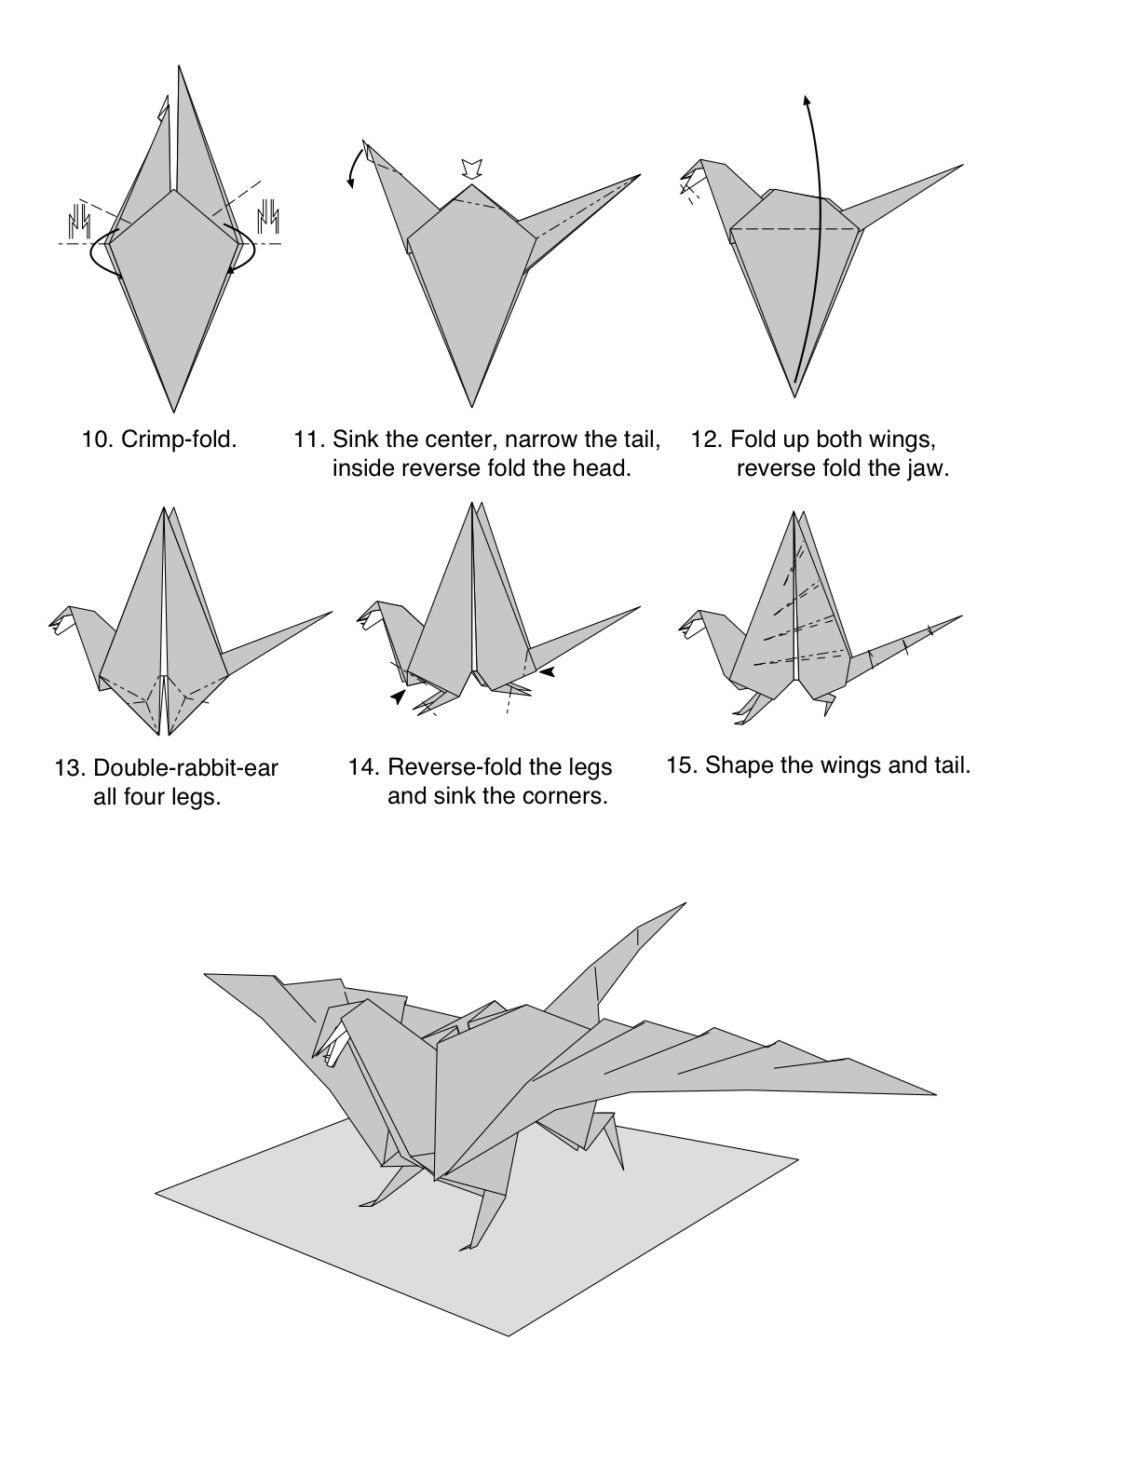 Picturesque Simple Origami Dragon How To Make A Simple Origami